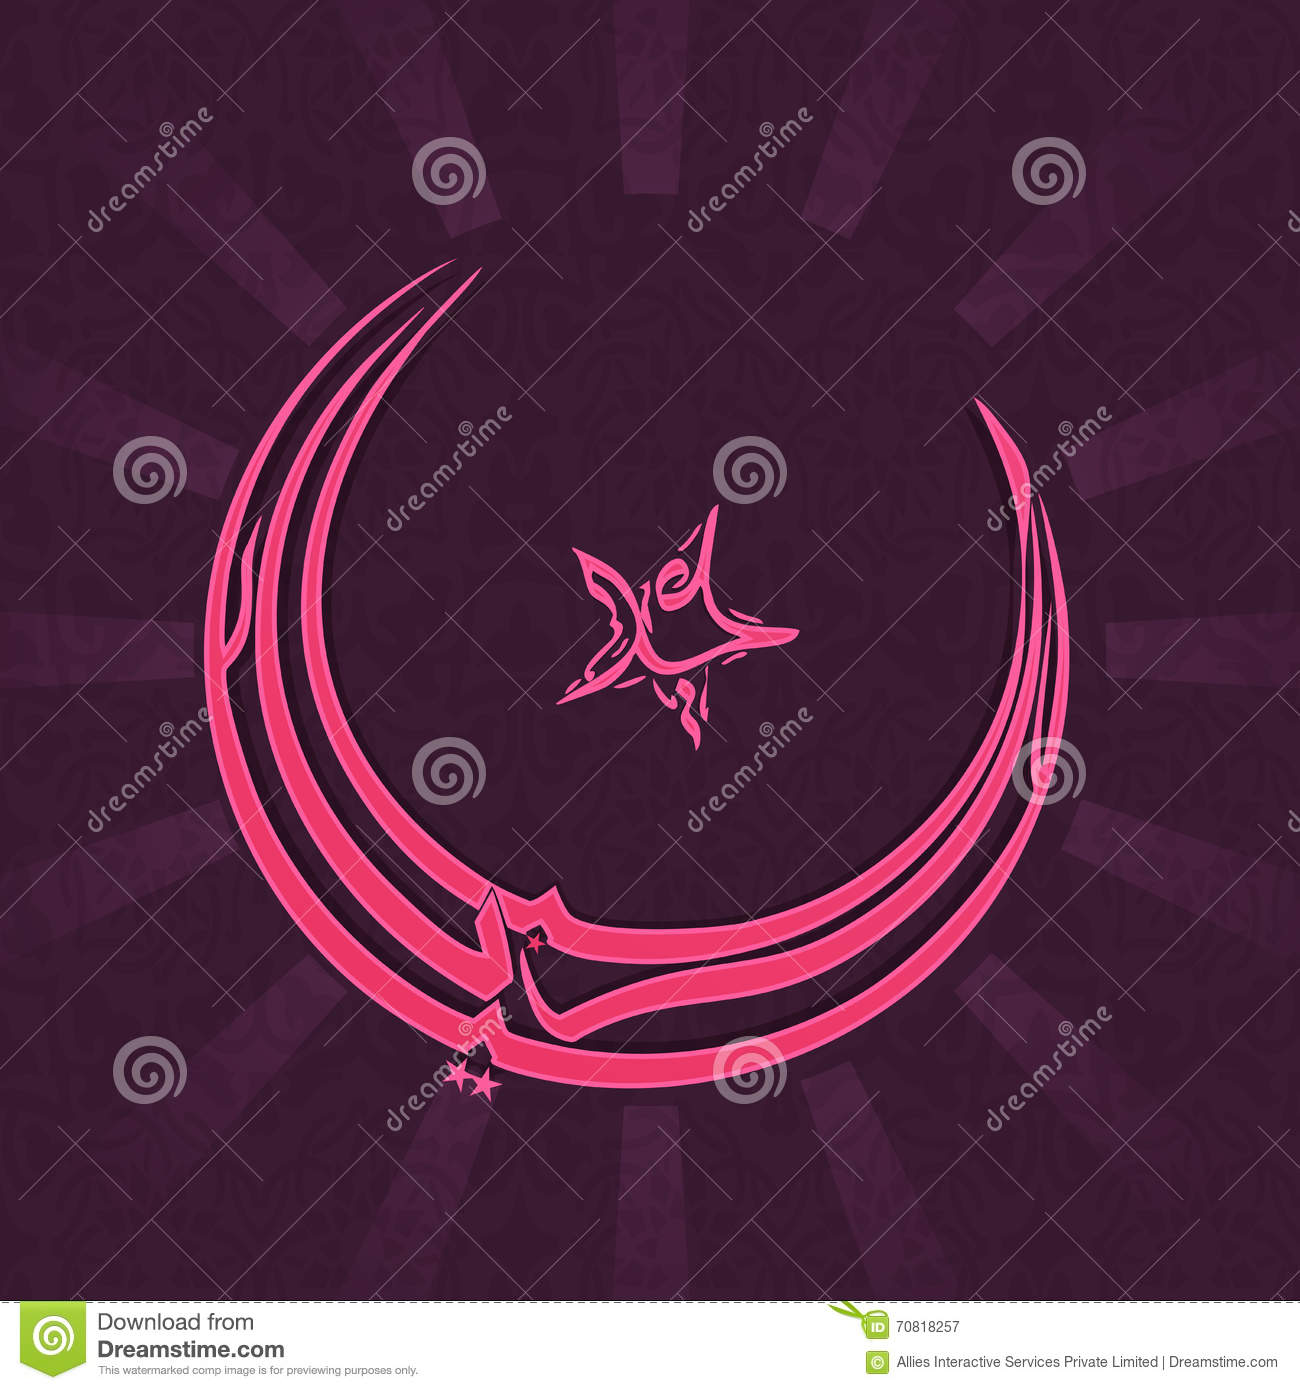 Arabic calligraphy for eid mubarak stock illustration